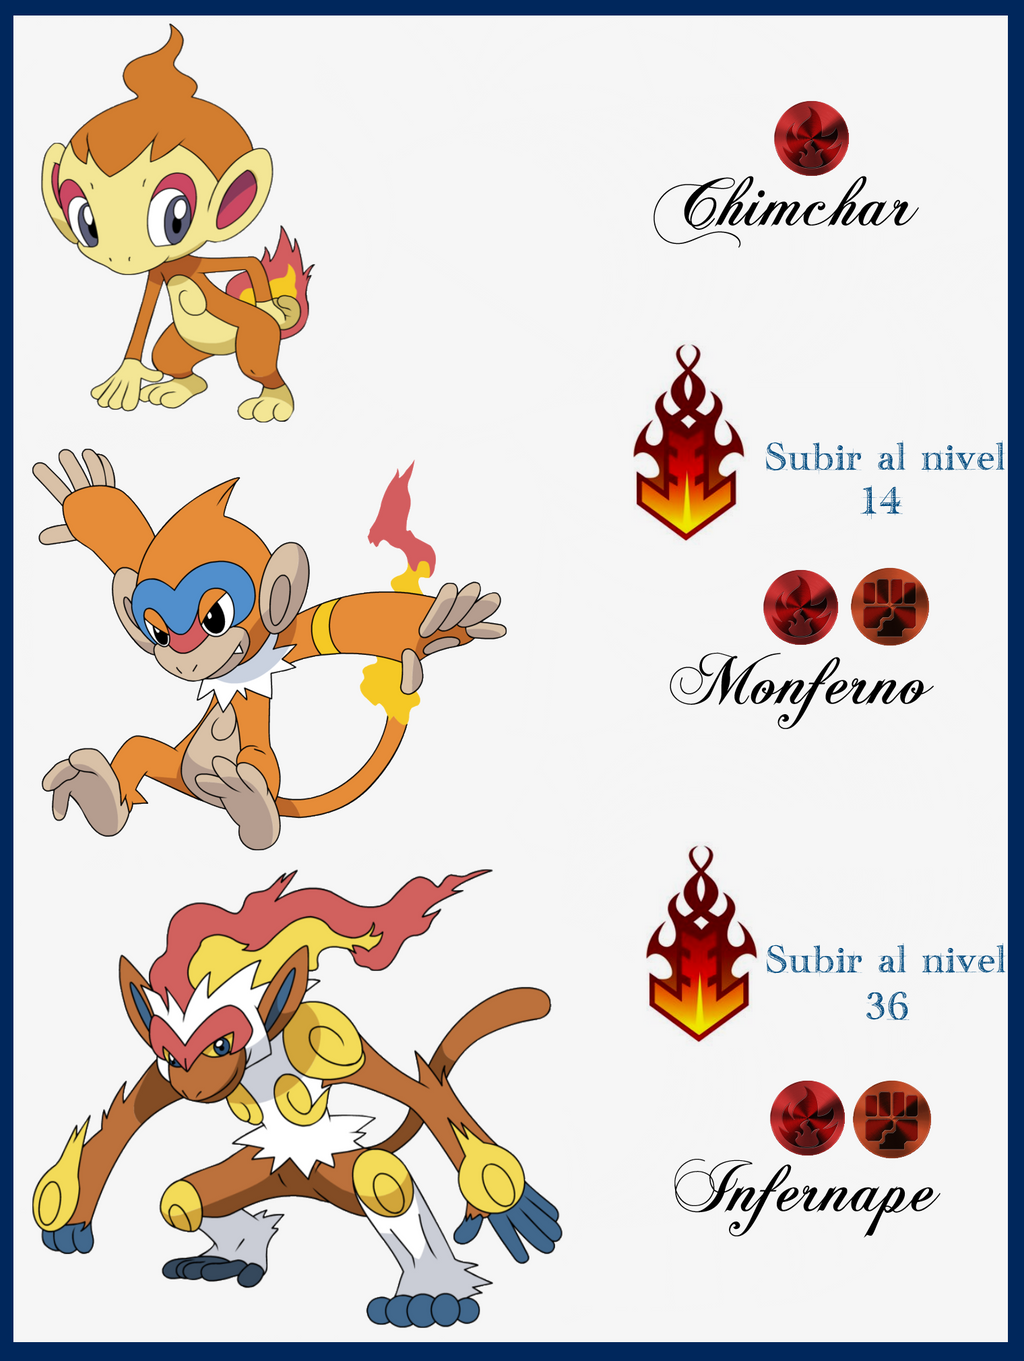 183 Chimchar by Maxconnery on DeviantArt